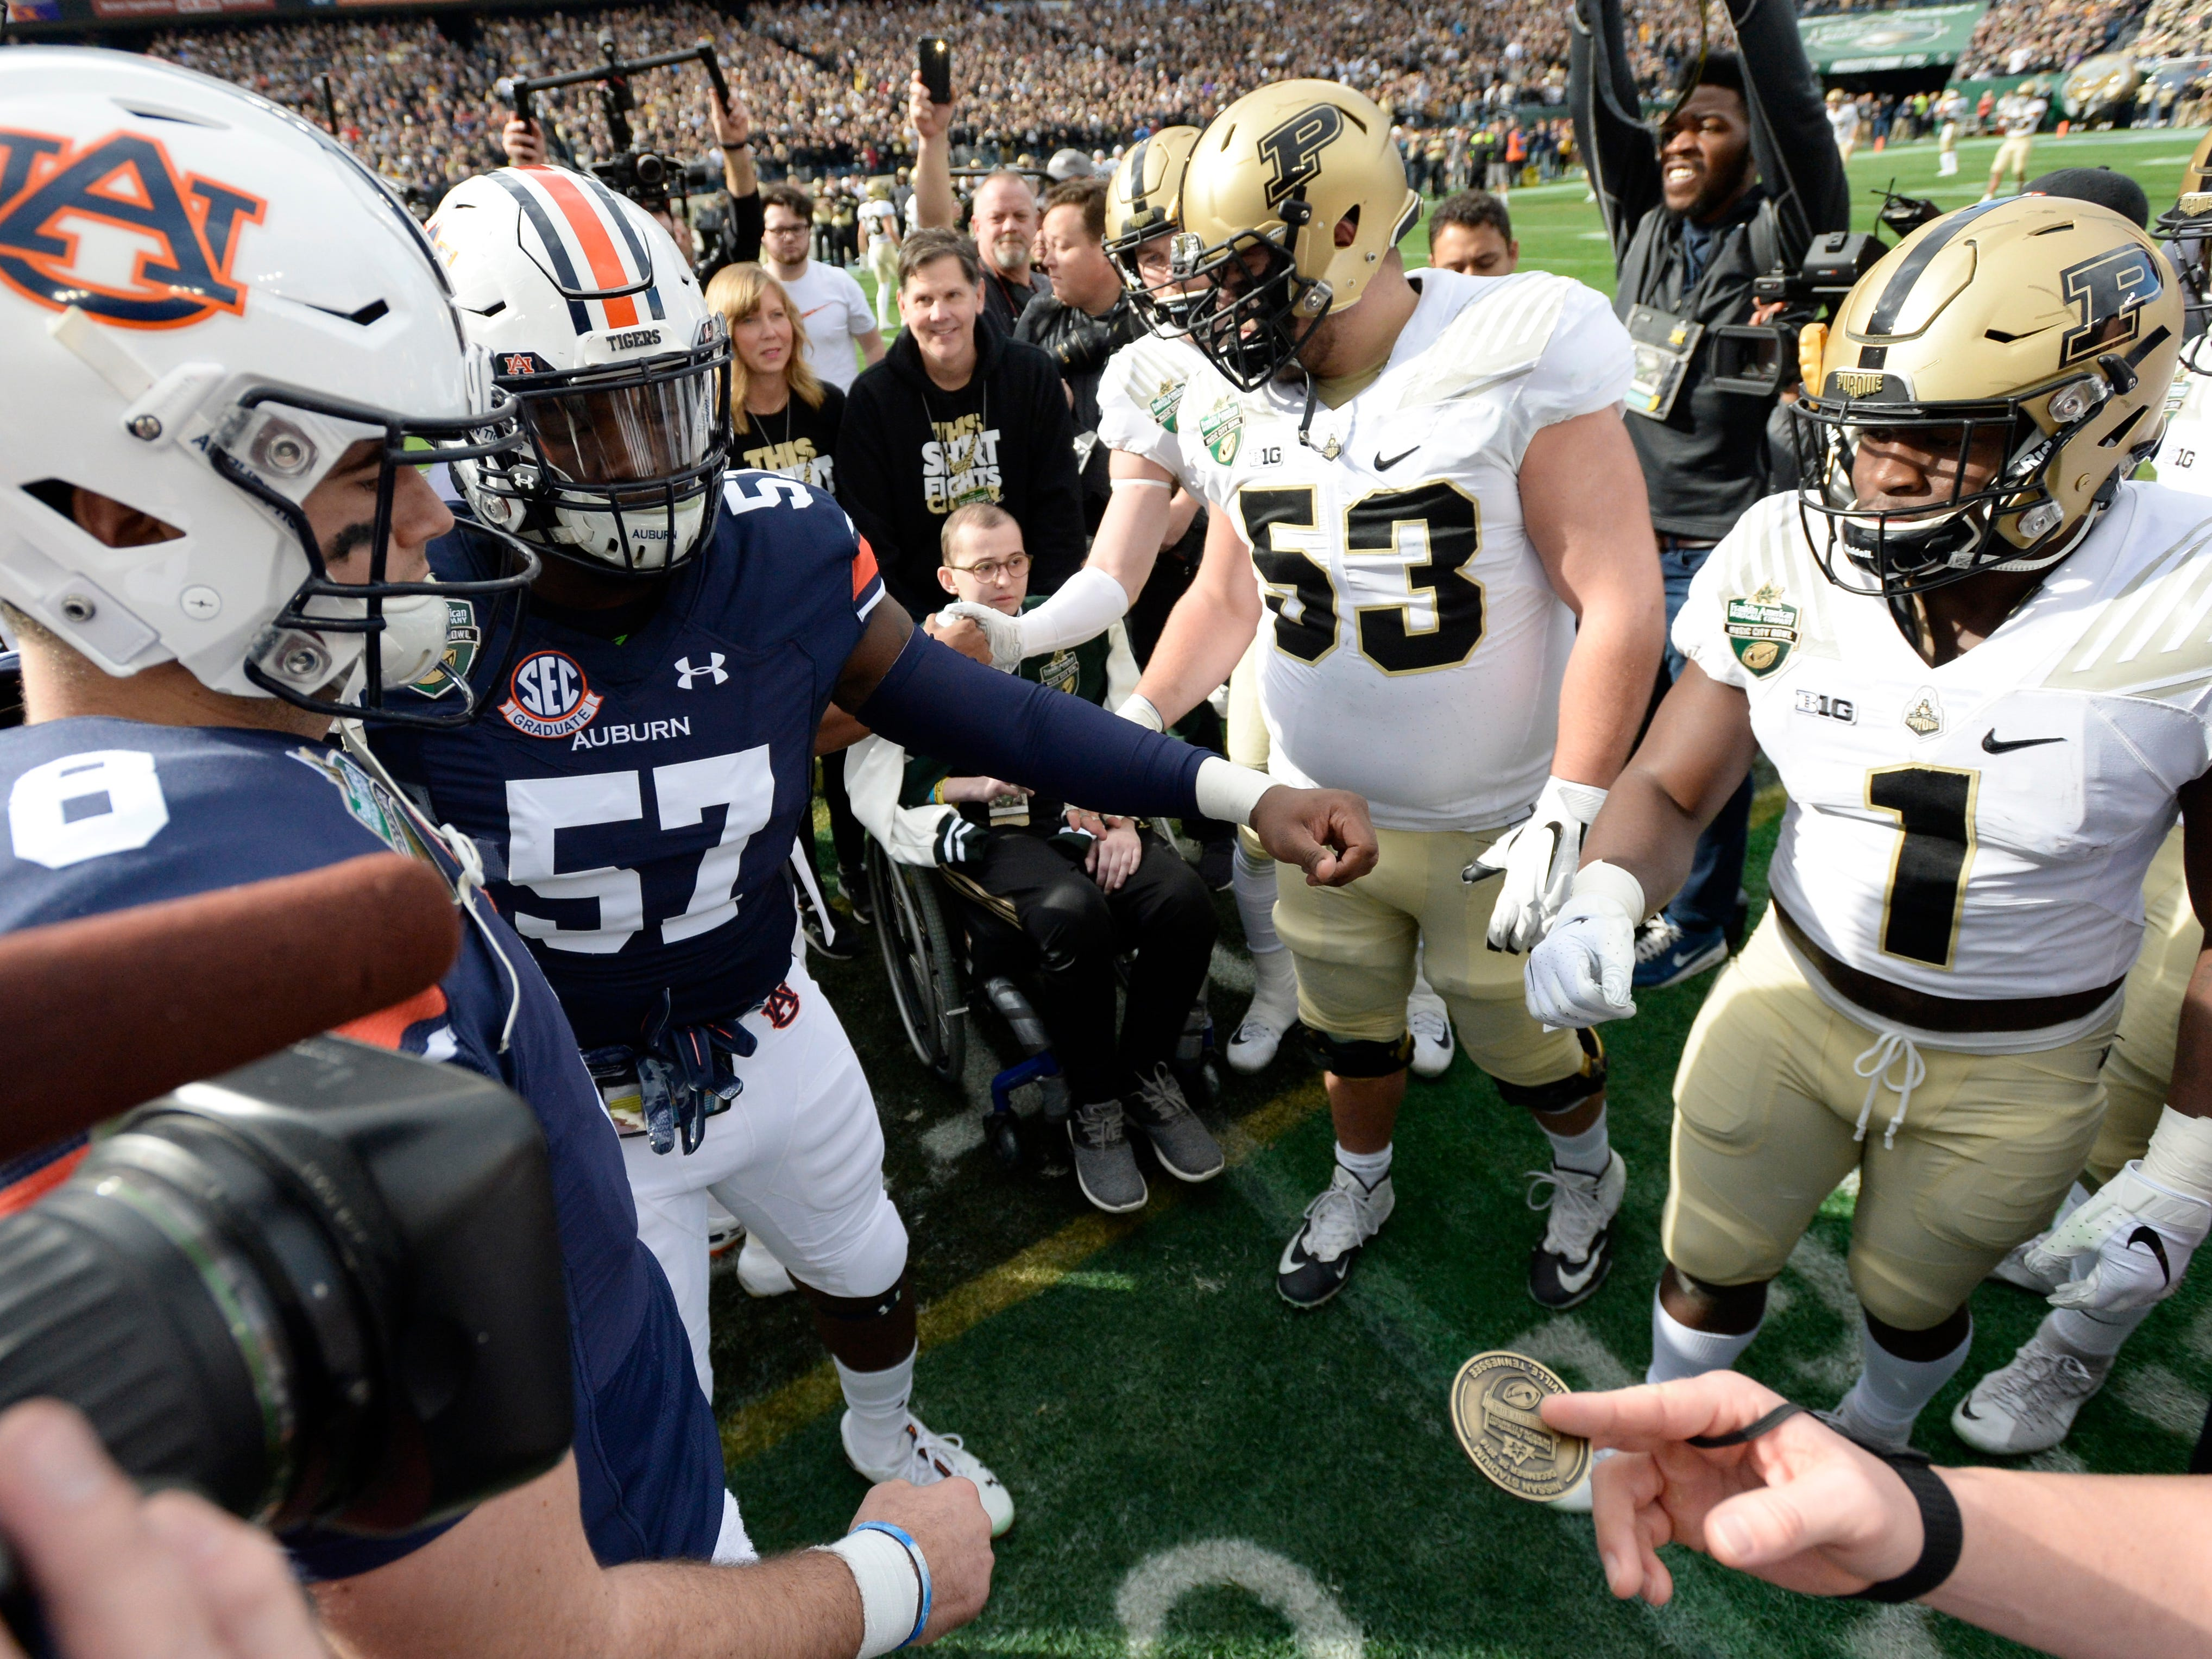 Auburn and Purdue players and Boilermakers honorary captain Tyler Trent gather for the coin toss before the start of the Music City Bowl NCAA college football game Friday, Dec. 28, 2018, at Nissan Stadium in Nashville, Tenn.